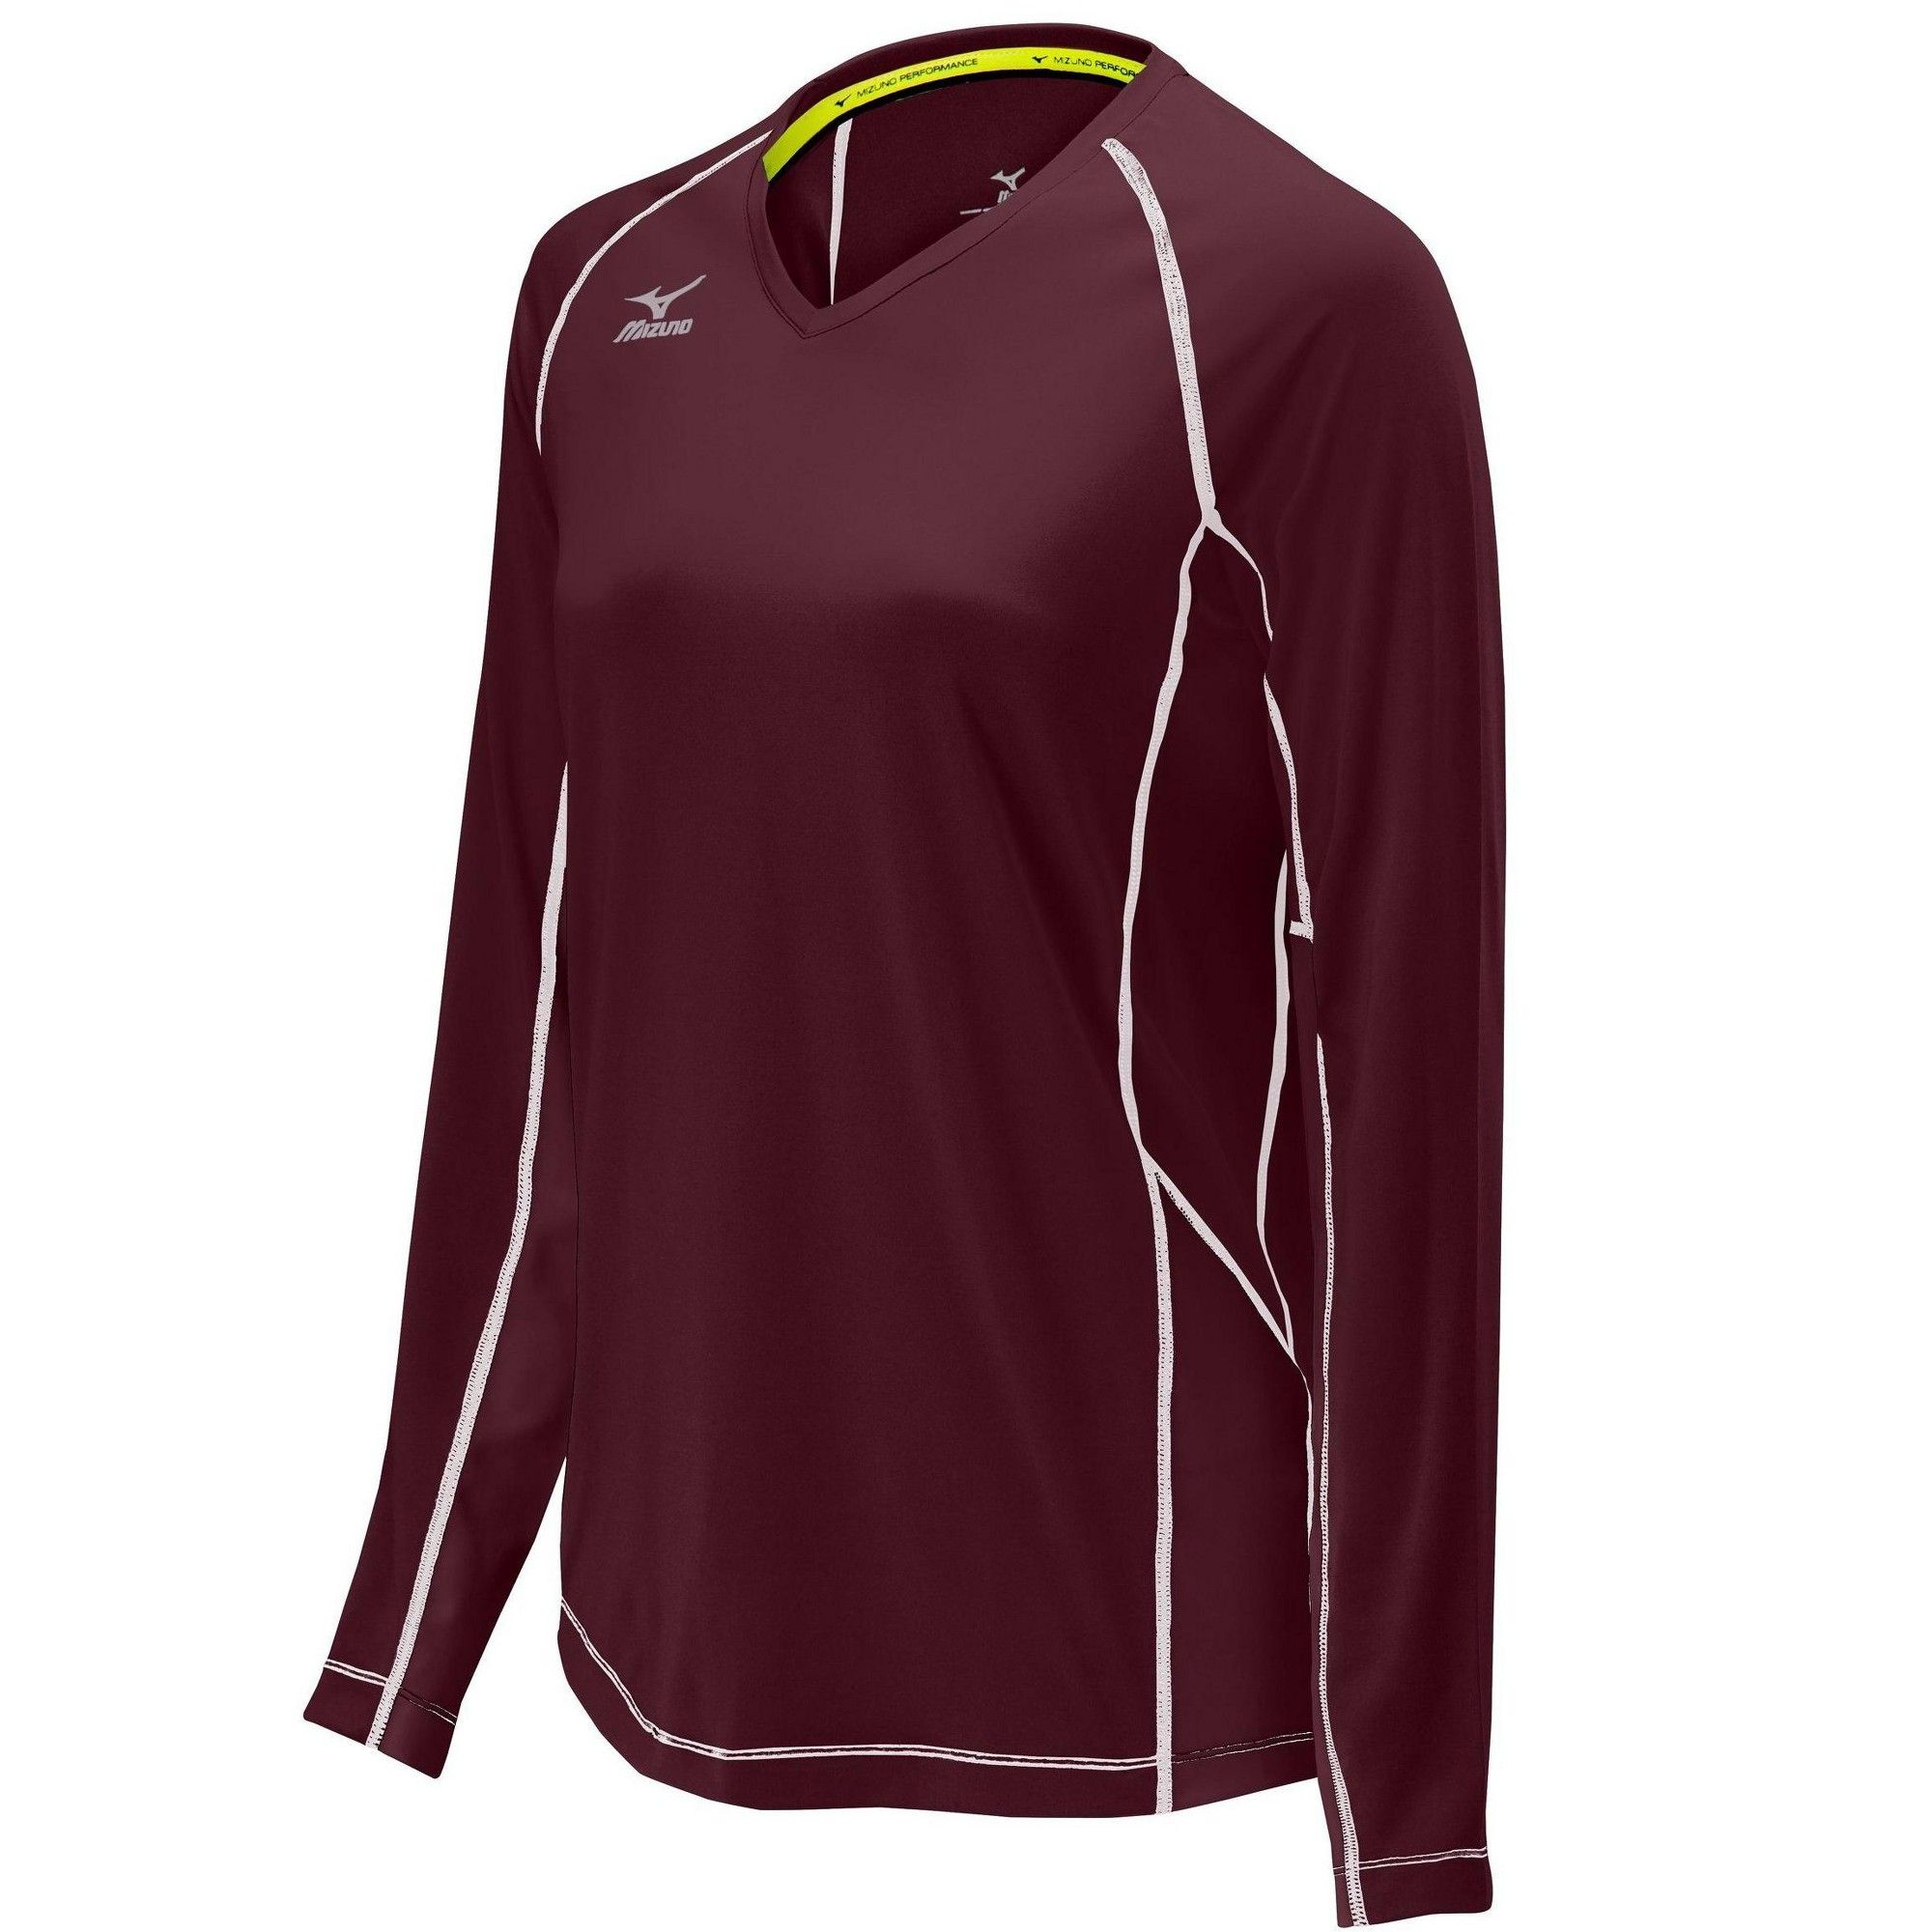 Mizuno Women S Elite 9 Classic Newport Long Sleeve Volleyball Jersey Womens Size Extra Large In Color Volleyball Jerseys Street Style Outfit Volleyball Outfits